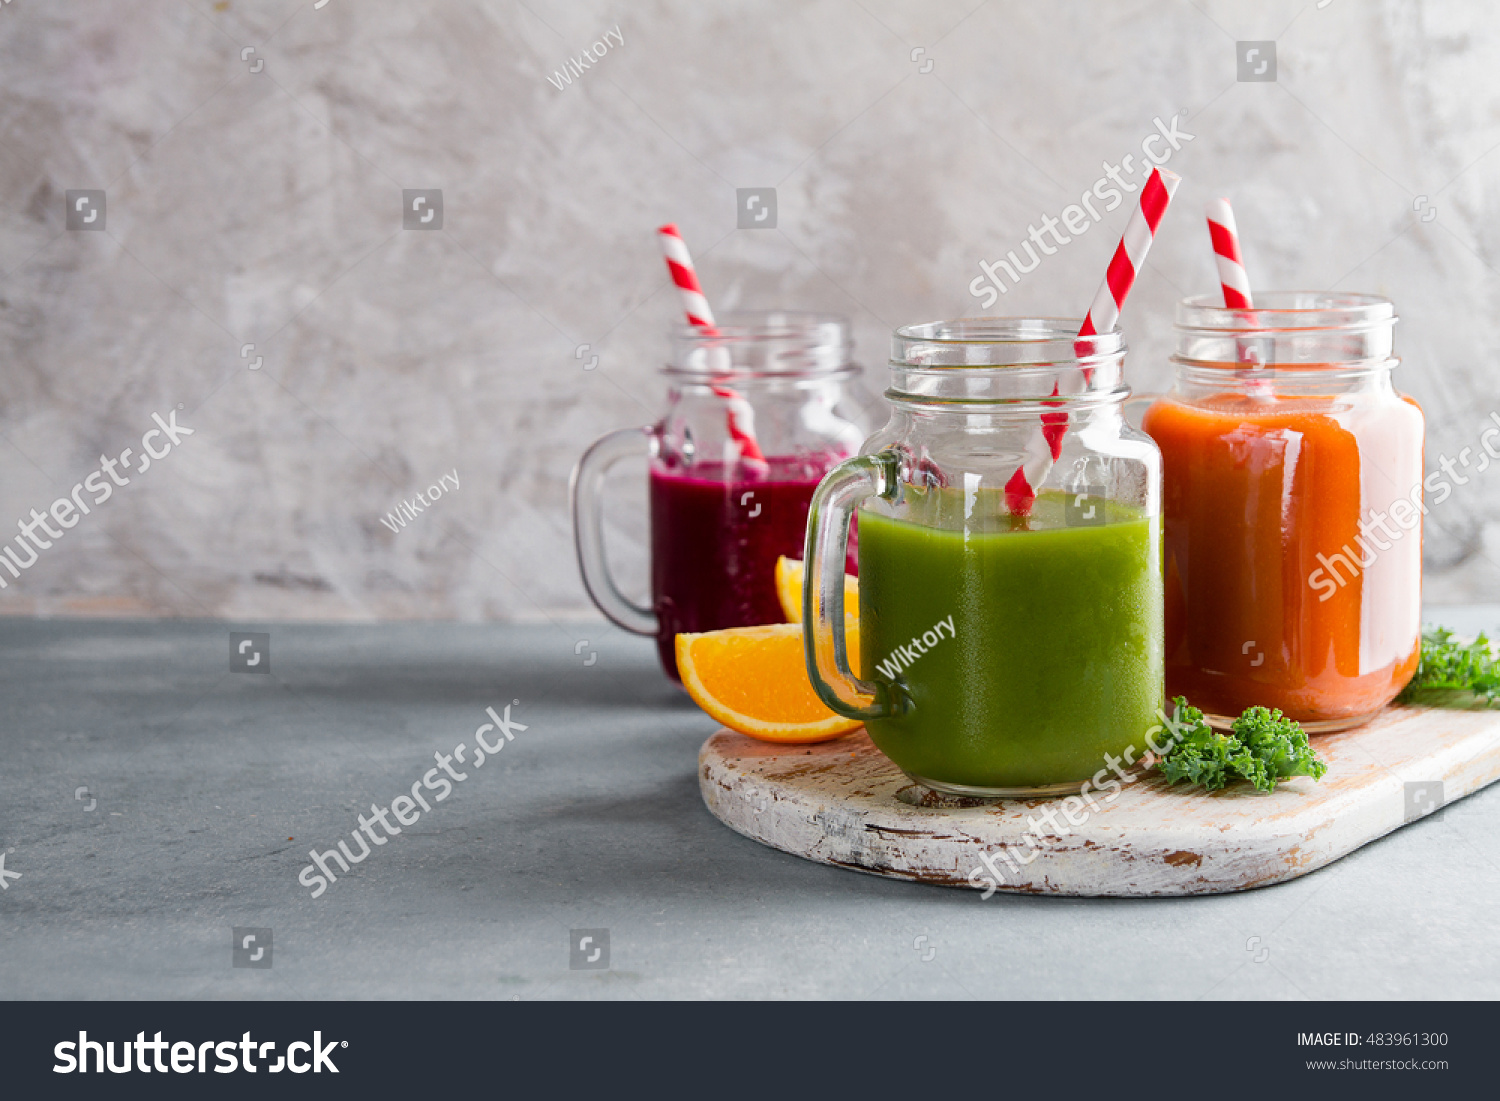 fresh fruit vegetable juice glass maison stock photo 483961300 shutterstock. Black Bedroom Furniture Sets. Home Design Ideas